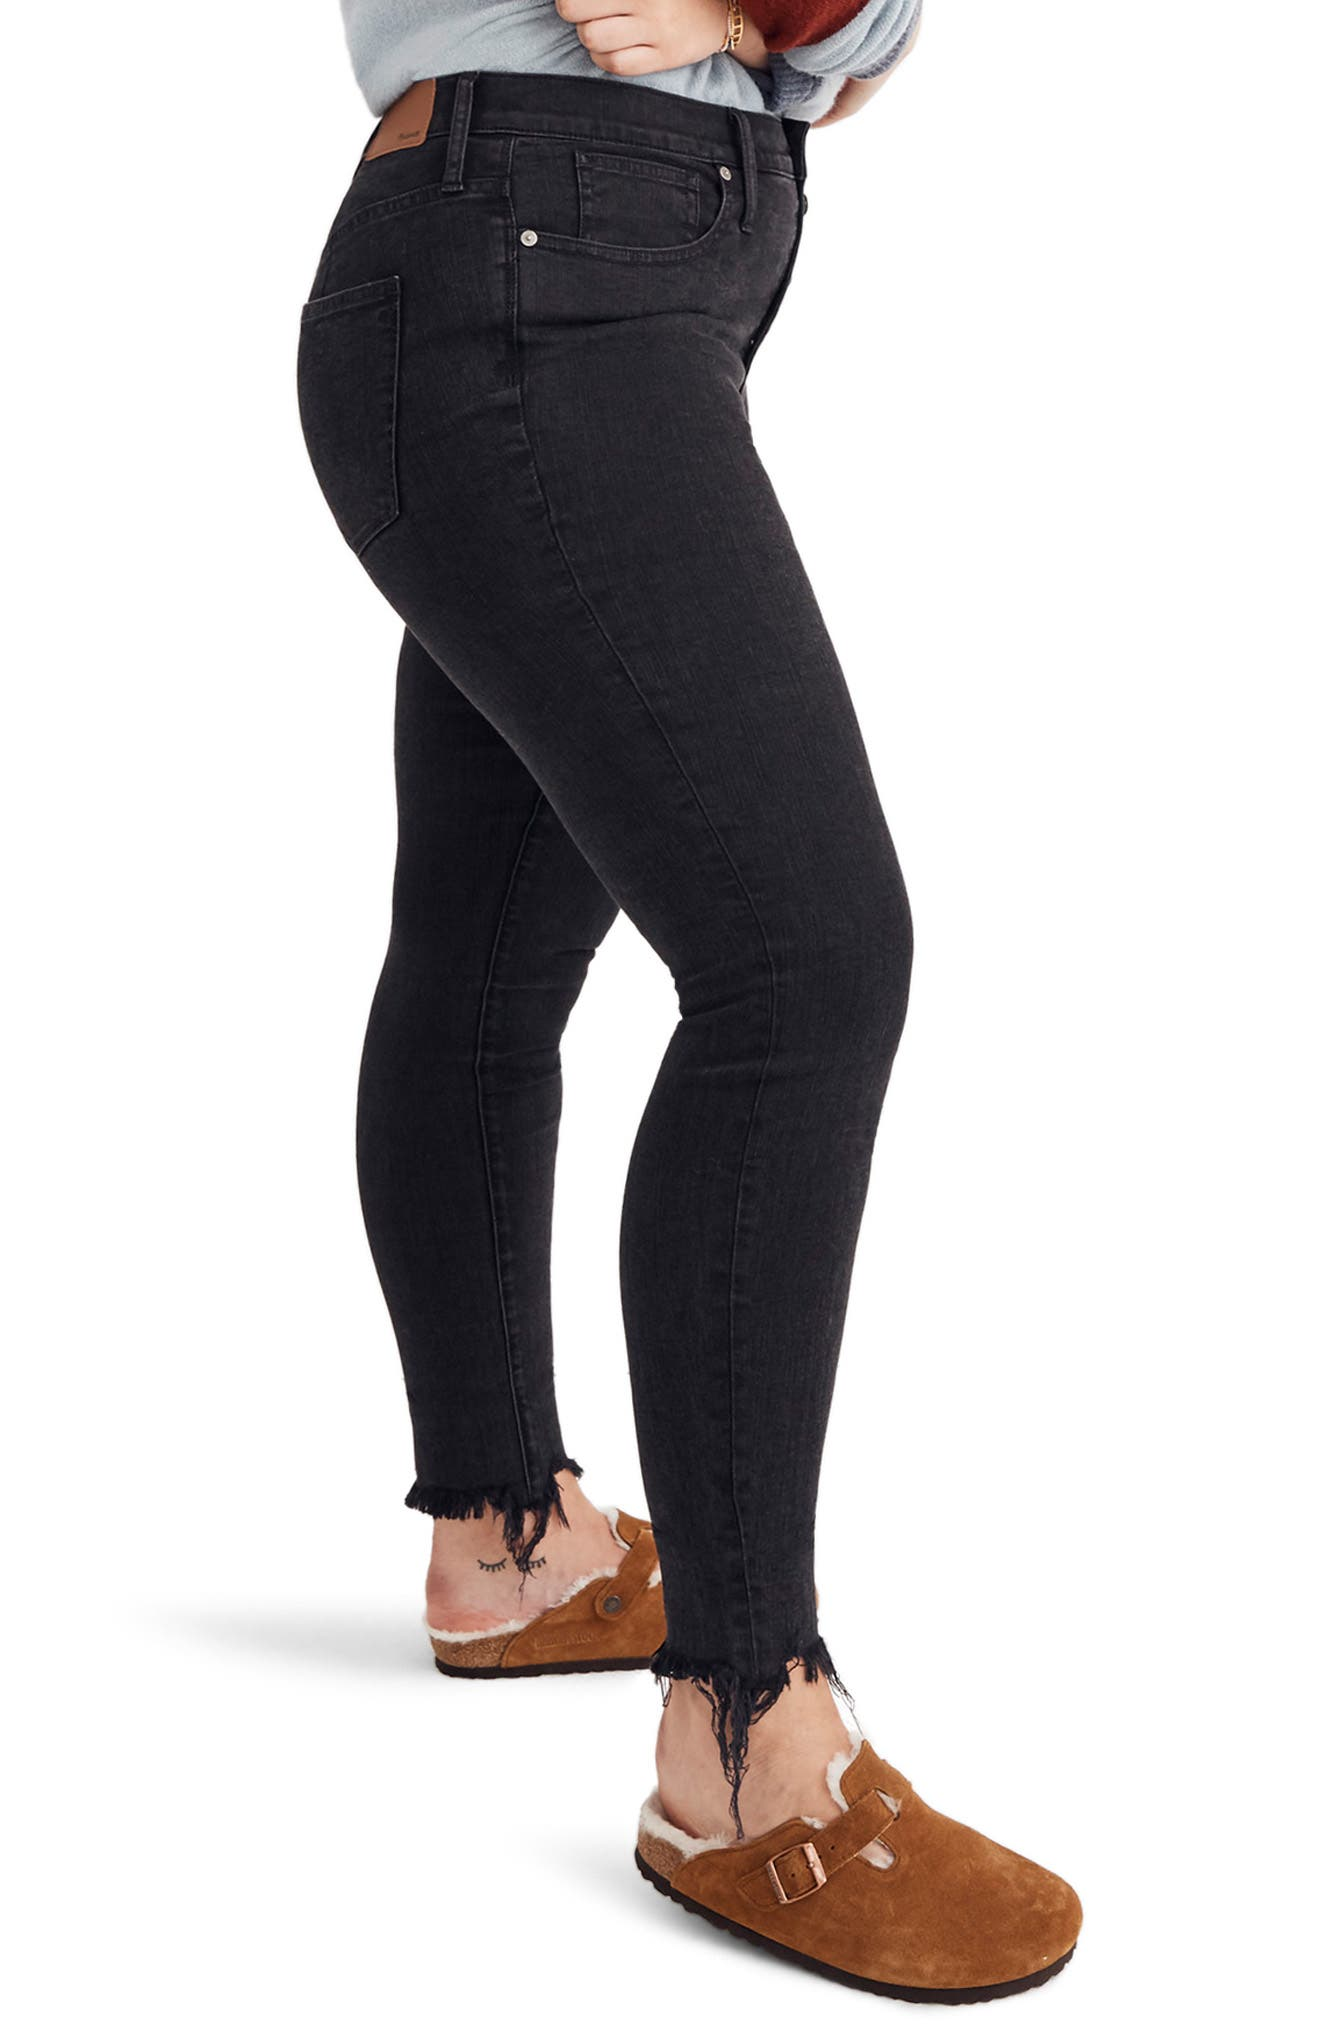 9-Inch Button High Waist Ankle Skinny Jeans,                             Alternate thumbnail 9, color,                             BERKELEY WASH